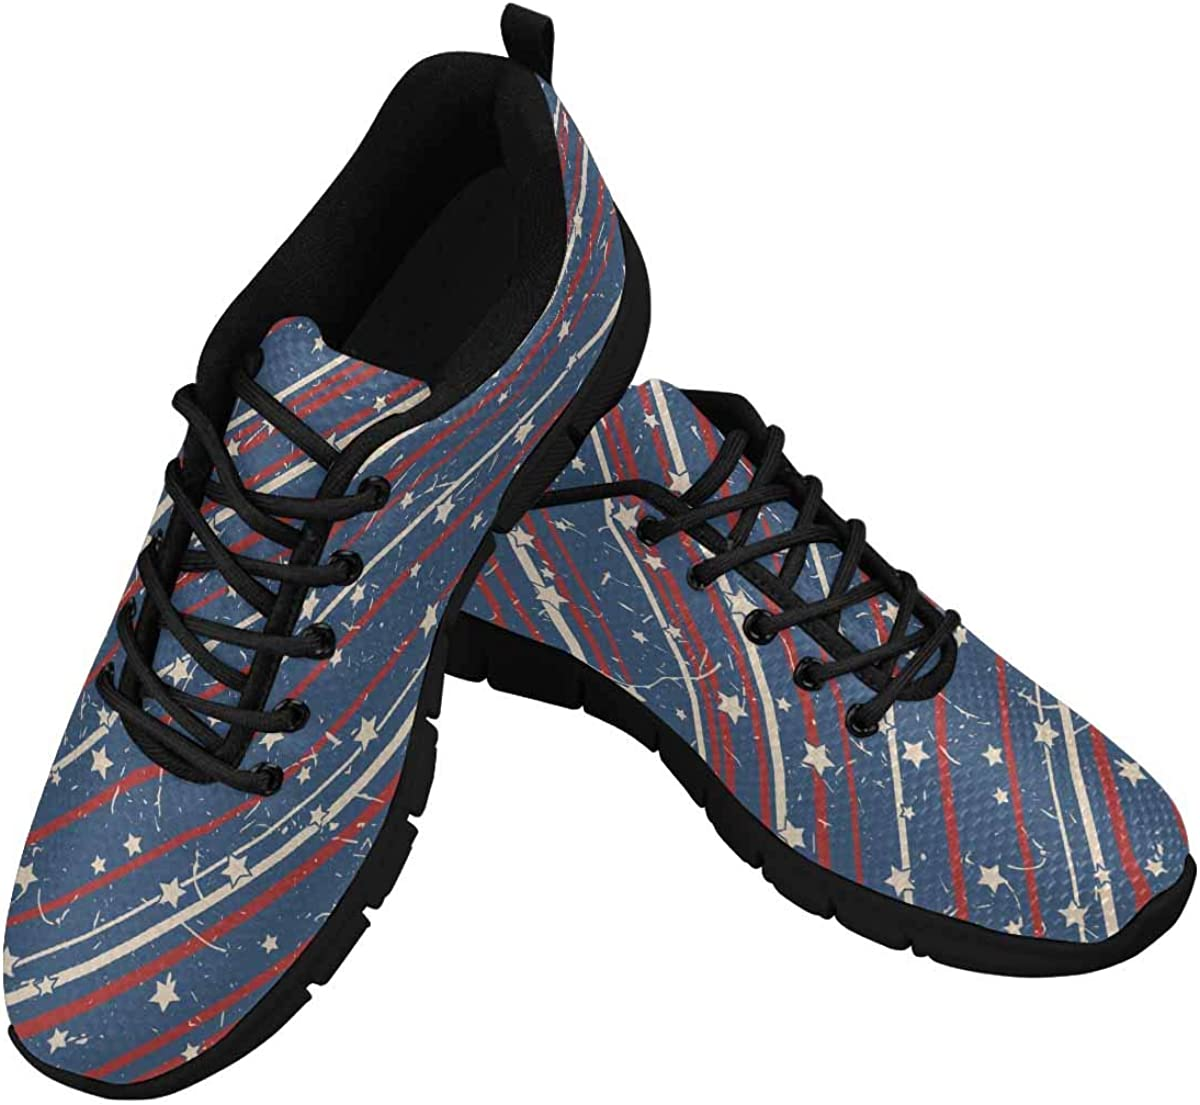 INTERESTPRINT Vintage American Stars and Stripes Women's Breathable Non Slip Sneakers